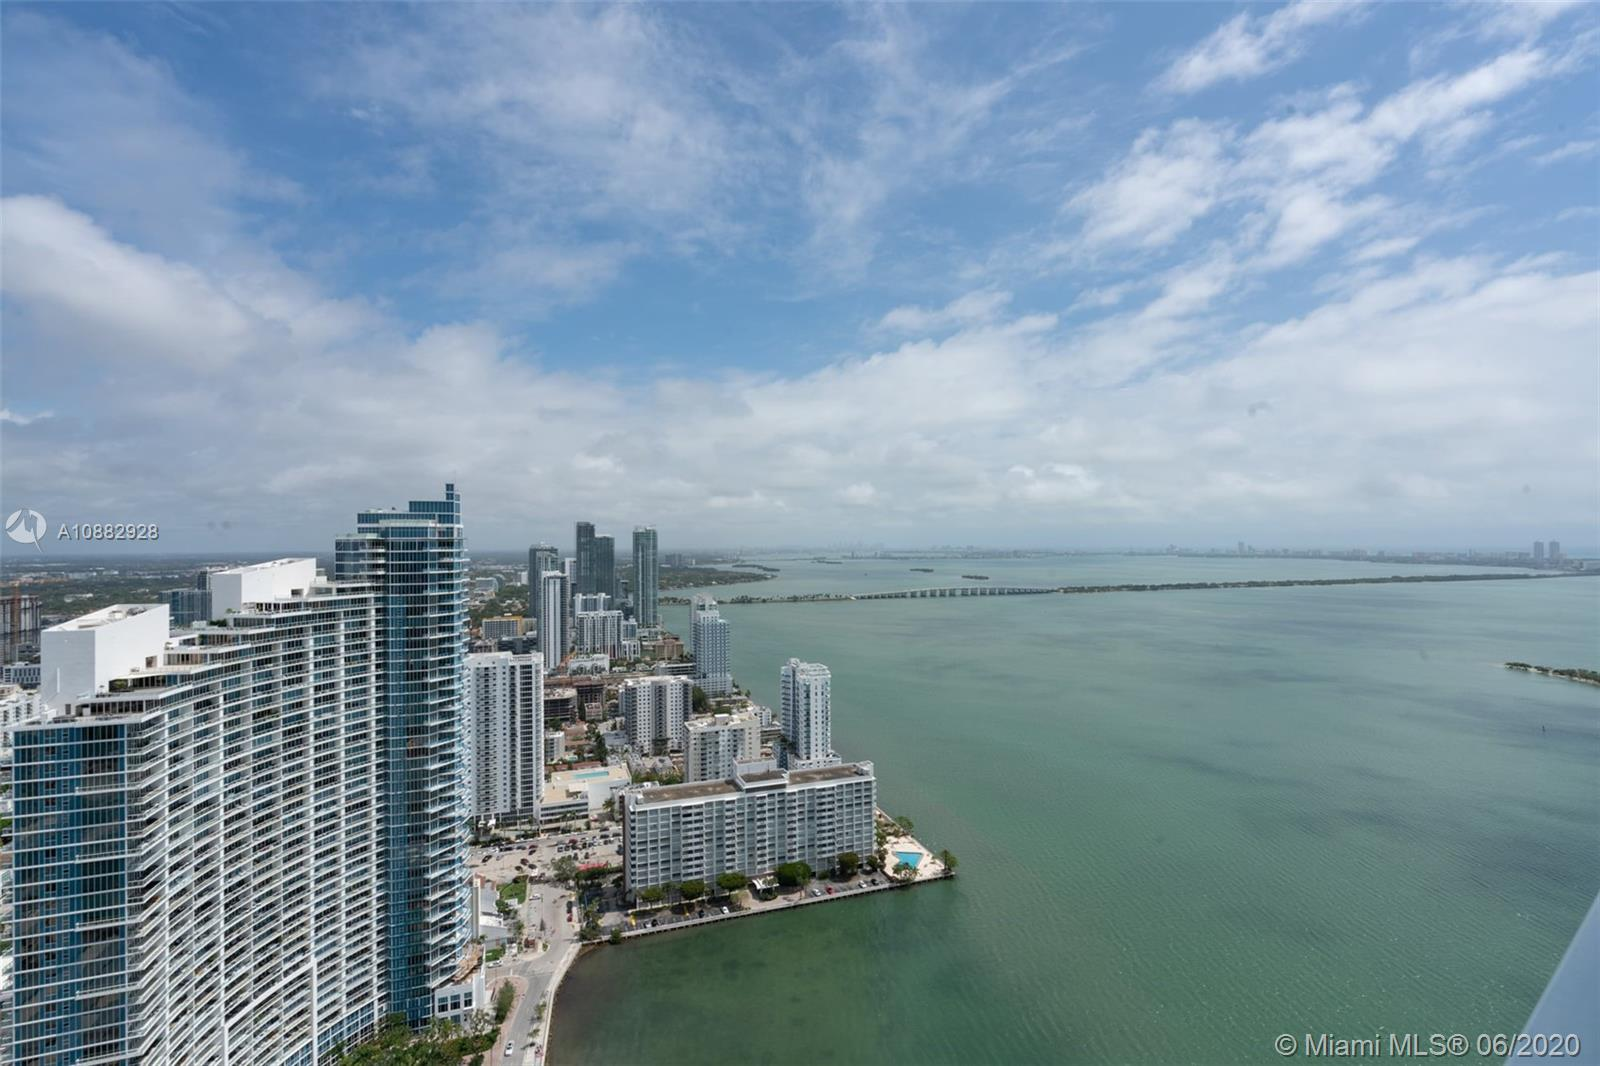 STUNNING 3 BED, 2.5 BATH, 49TH FLOOR PENTHOUSE WITH AMAZING OCEAN, BAY & SUNSET VIEWS LOCATED IN THE HEART OF EDGEWATER MIAMI, DIRECTLY ACROSS THE STREET FROM MARGARET PACE PARK & BISCAYNE BAY! CONTEMPORARY HIGH-END FURNISHINGS WITH CUSTOM FEATURES & FIXTURES THROUGHOUT INCLUDE: MARBLE FLOORS, CUSTOM DESIGNED JACUZZI TUB & STANDING SHOWER IN MASTER BATH, ELECTRIC BLACKOUT SHADES IN MASTER, BUILT-IN WINE COOLER, STAINLESS STEEL APPLIANCES, AND CUSTOM CLOSETS IN EVERY ROOM! UNIT ALSO INCLUDES 2 DEEDED PARKING SPACES LOCATED ON 3RD FLOOR OF GARAGE! A DEFINITE MUST SEE!